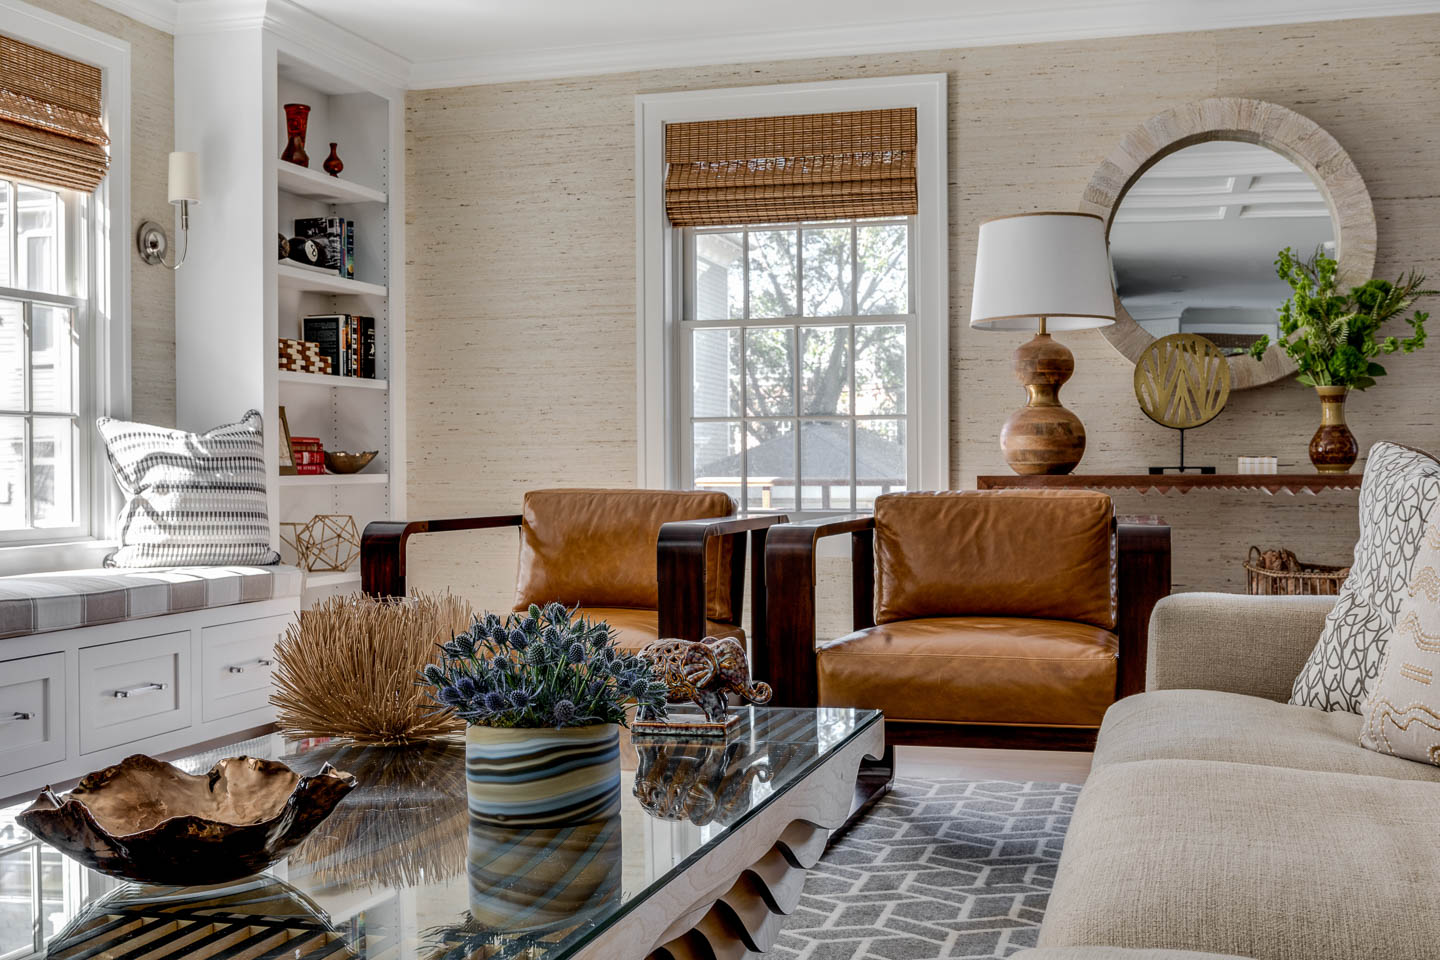 Living Room, Newport, Rhode Island, Interior Design, Window bench, coffee table, leather chairs